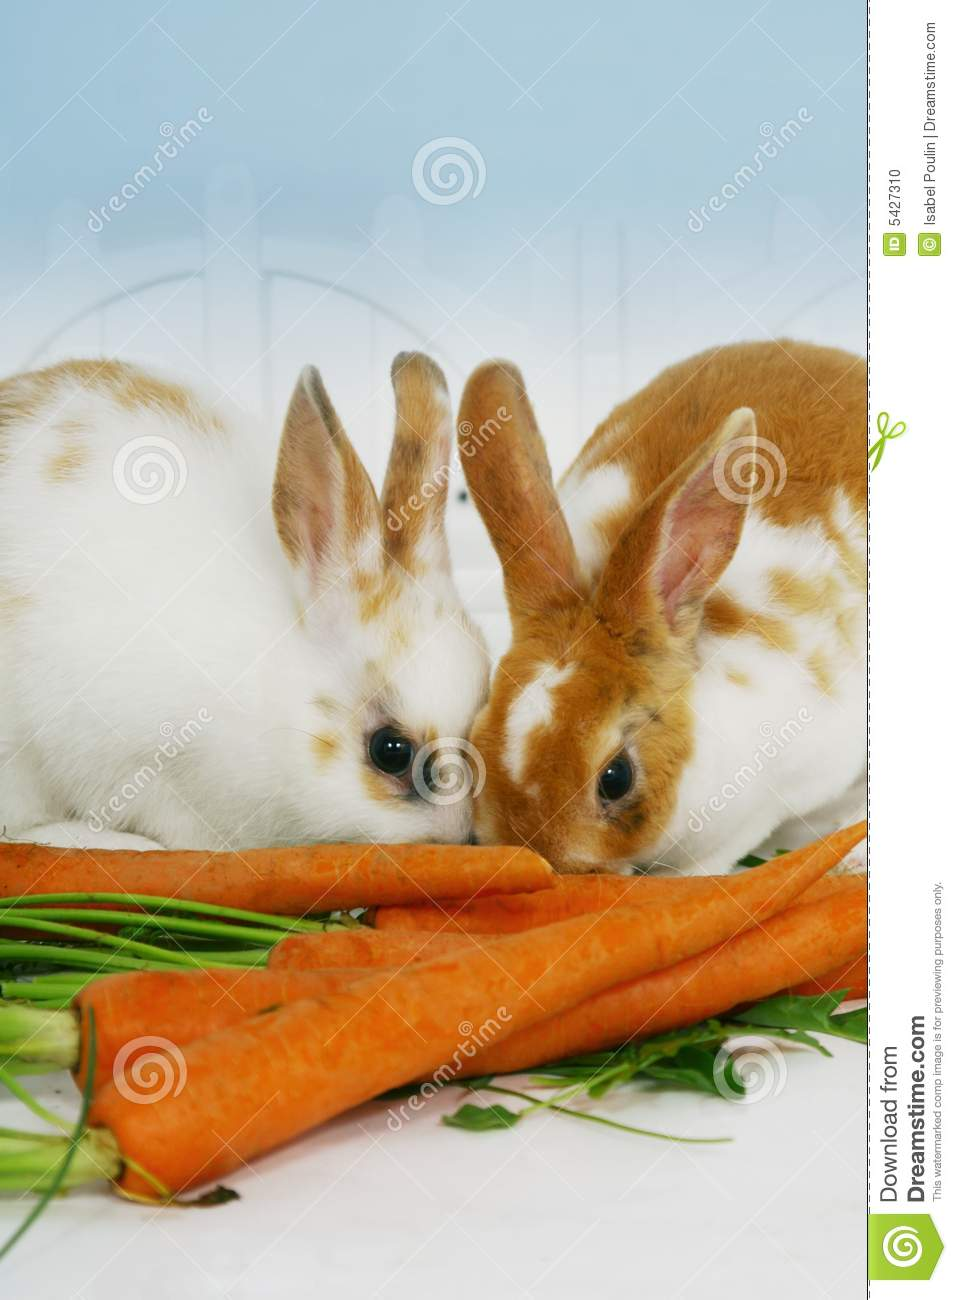 view of two cute little rabbits eating on a bunch of carrots.